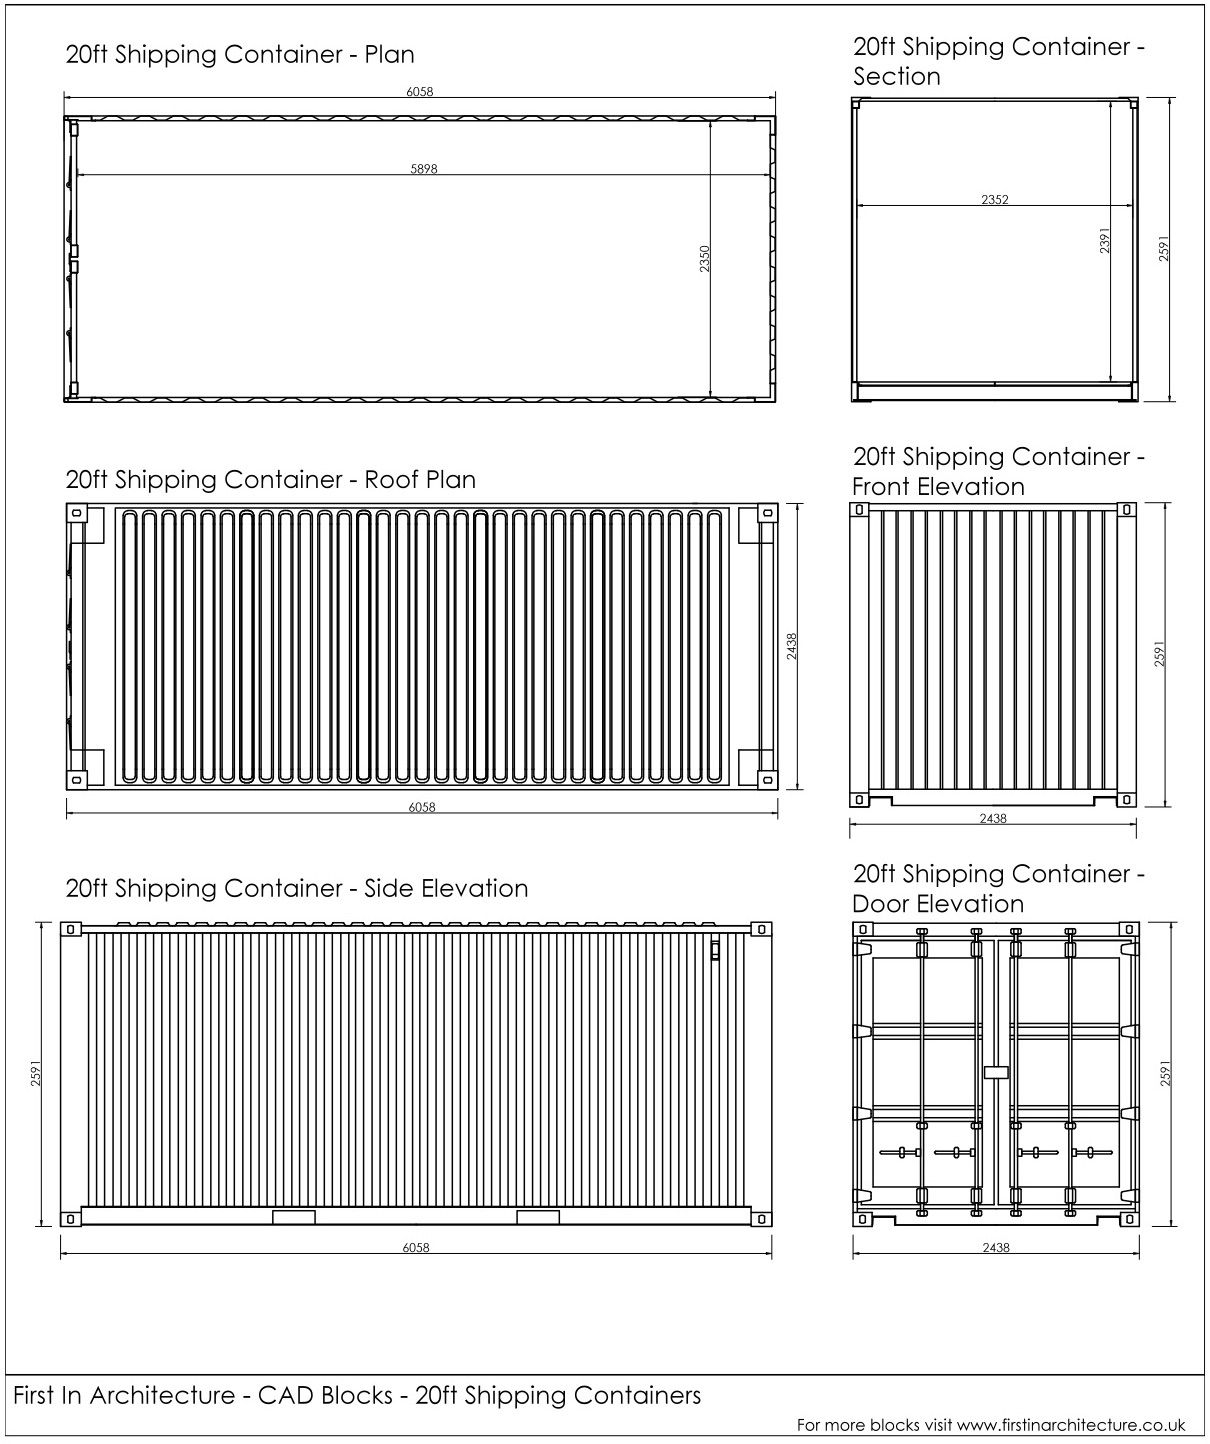 Best Kitchen Gallery: Free Cad Blocks Shipping Containers of Shipping Container Cad Drawing on rachelxblog.com